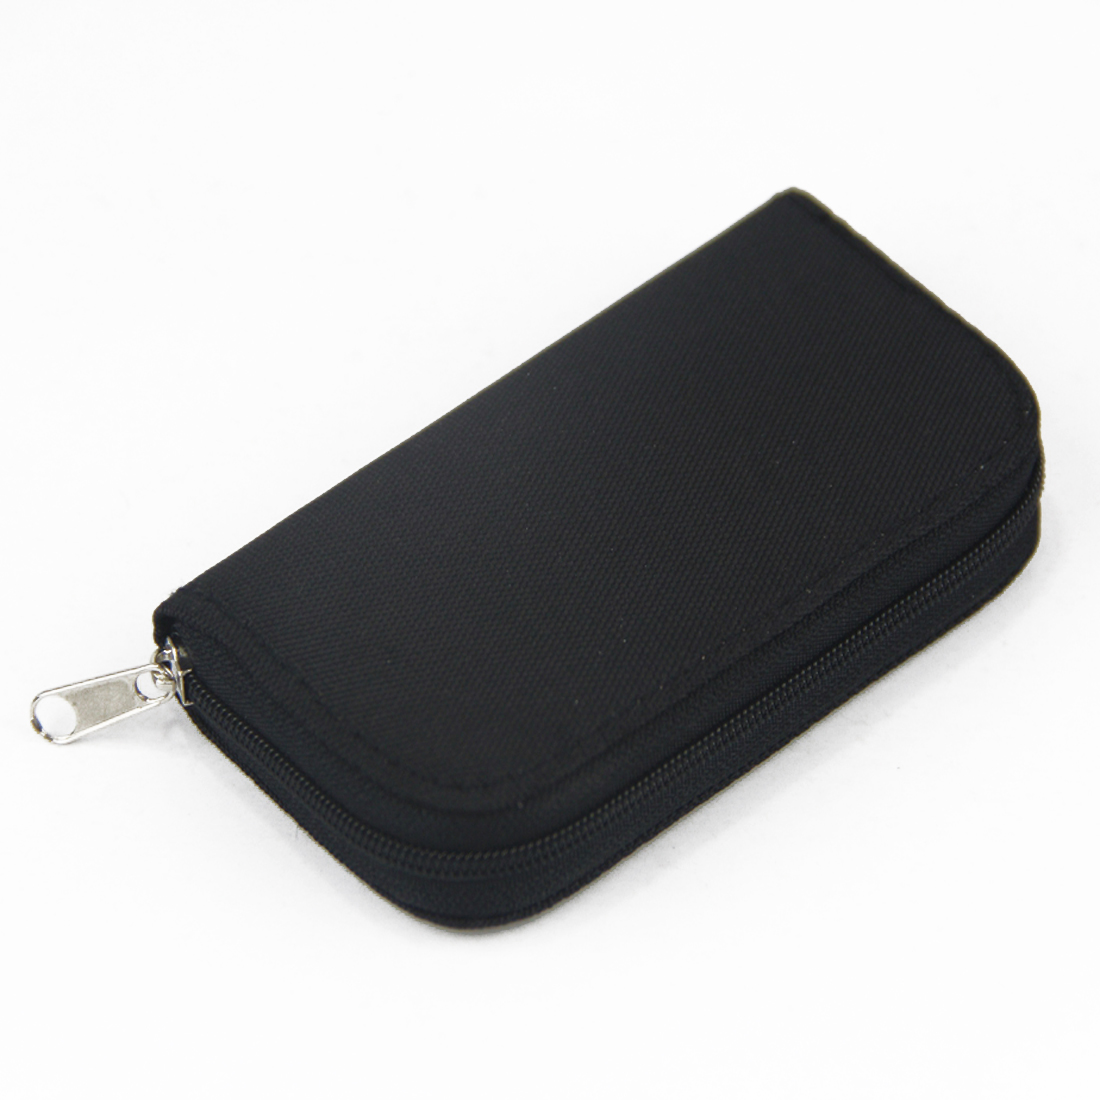 Etmakit  TOP Memory Card Storage Carrying Case Holder Wallet 18slots + 4 Slots For CF/SD/SDHC/MS/DS 3DS Game Accessory